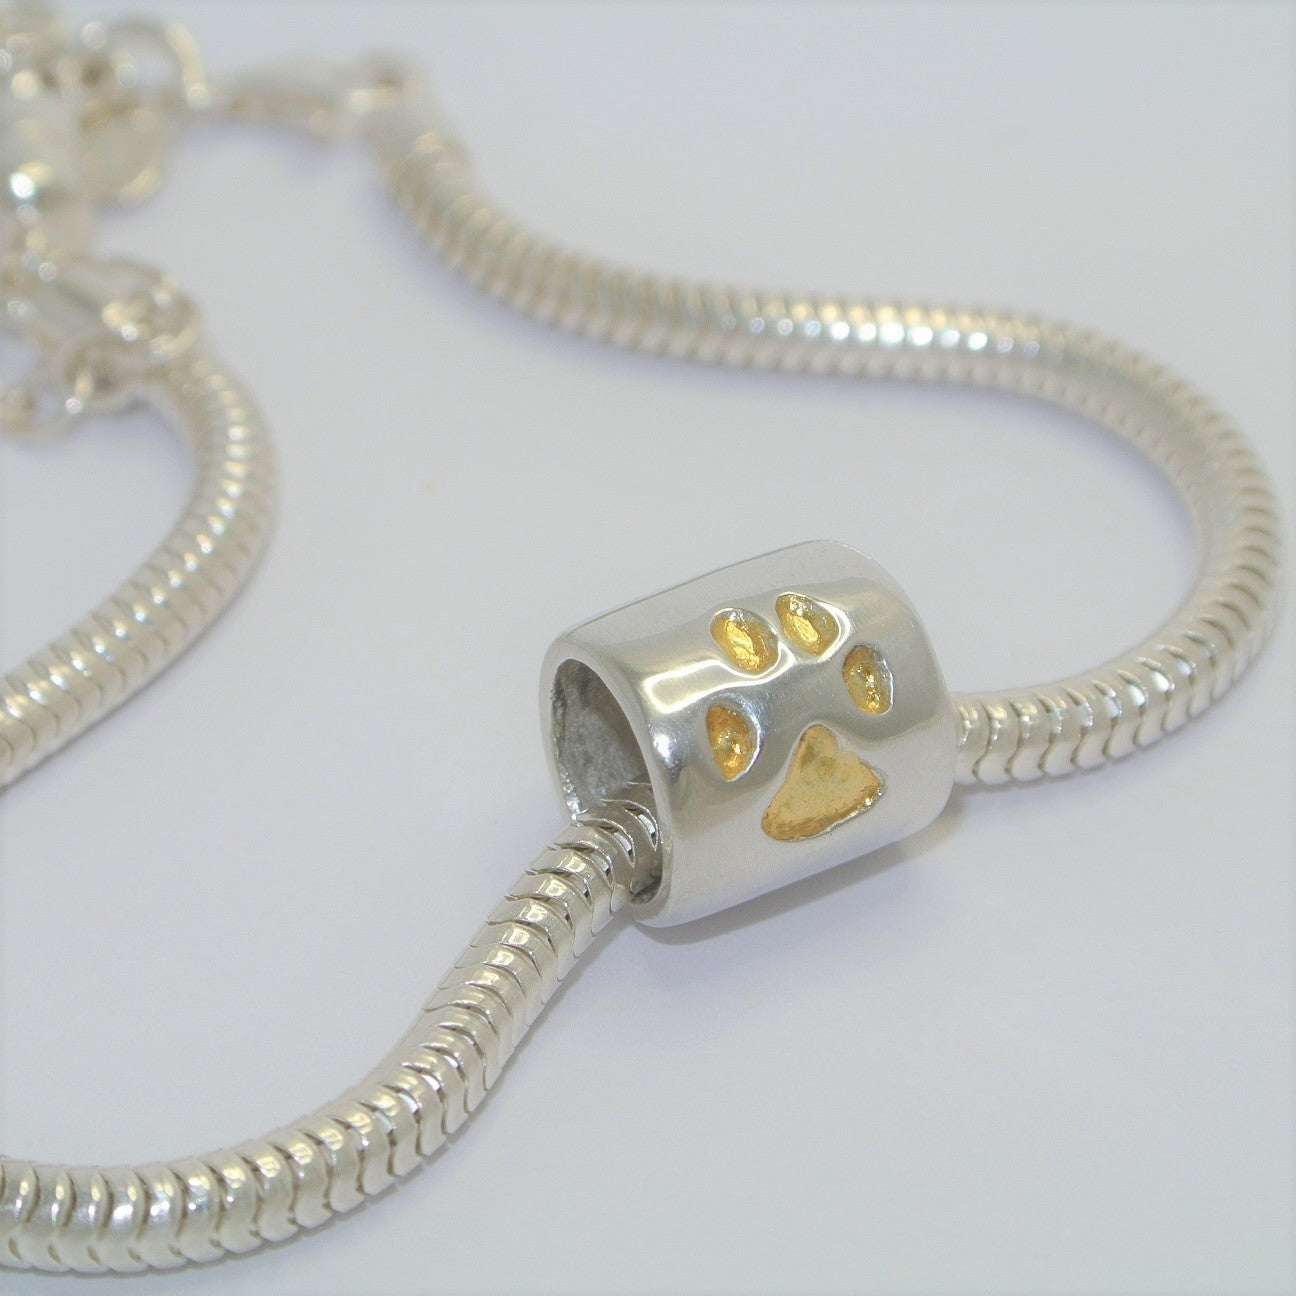 e54fe1b0c Pawprint Bracelet Barrel Bead with 24ct Gold. Sterling Silver Keepsake  Jewellery